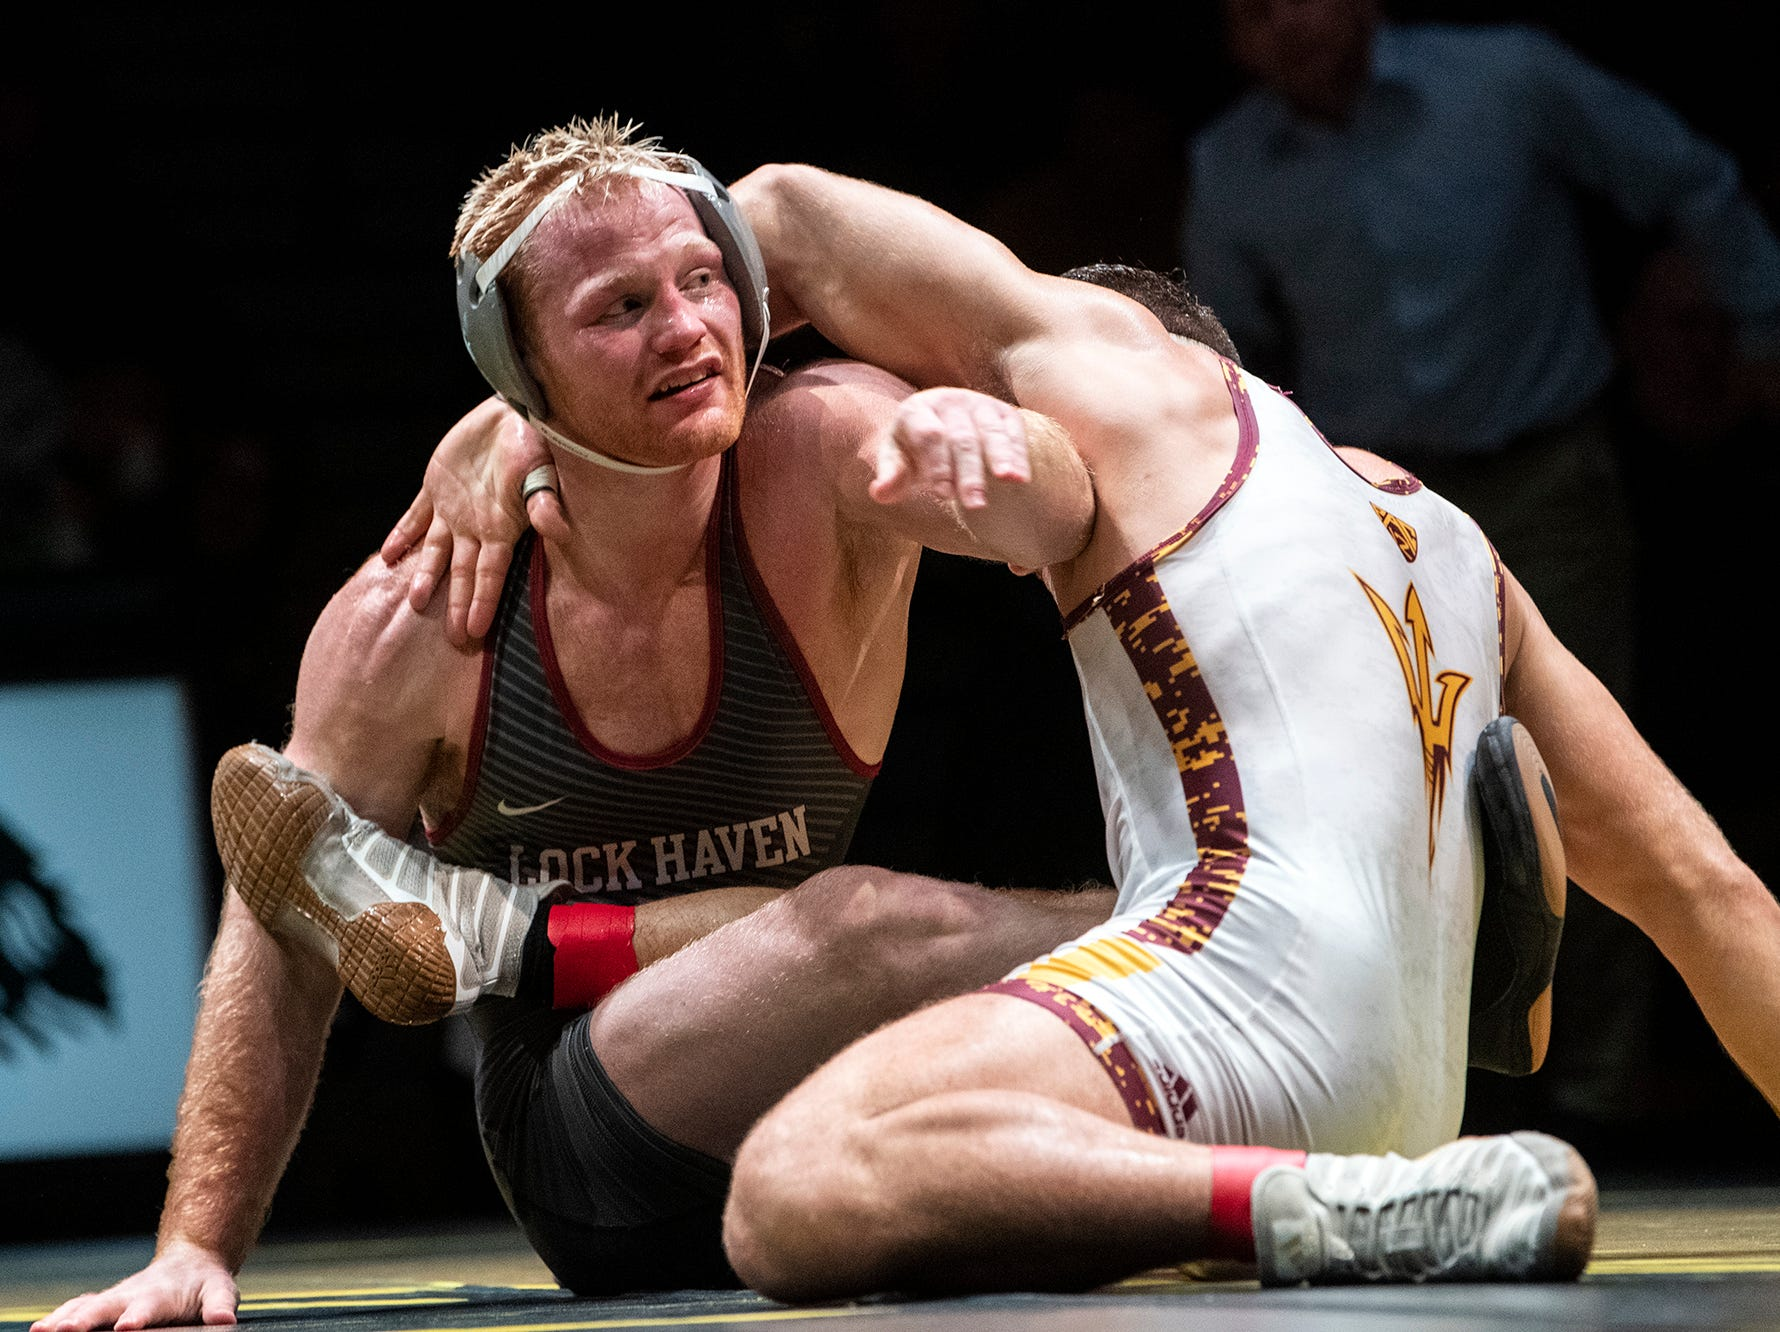 Lock Haven's Chance Marsteller, left, tries to escape Arizona State's Josh Shields during the 165-pound bout at Red Lion's Fitzkee Athletic Center on Friday, Jan. 25, 2019. Shields (No. 5) beat Marsteller (No. 4), 2-1, in a tiebreaker. No. 22 Lock Haven upset No. 12 Arizona State, 23-14, in the first ever 'Rumble in the Jungle.'